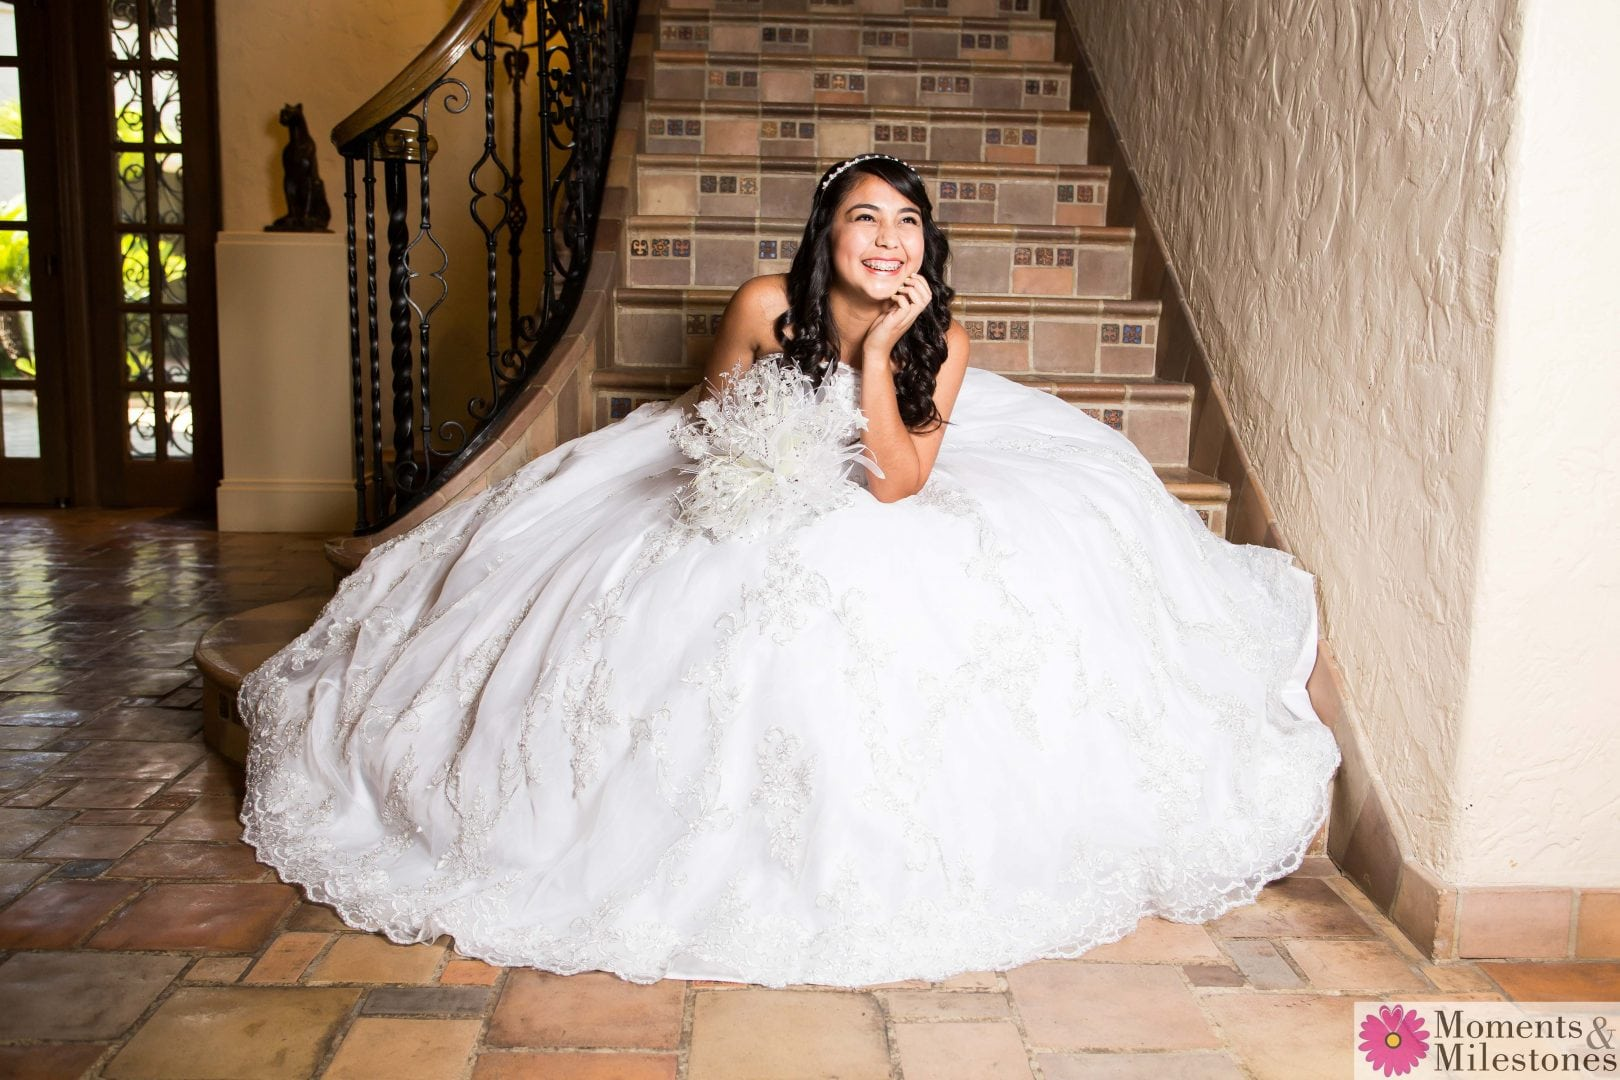 Sweetest Quince Session You'll See All Day!!